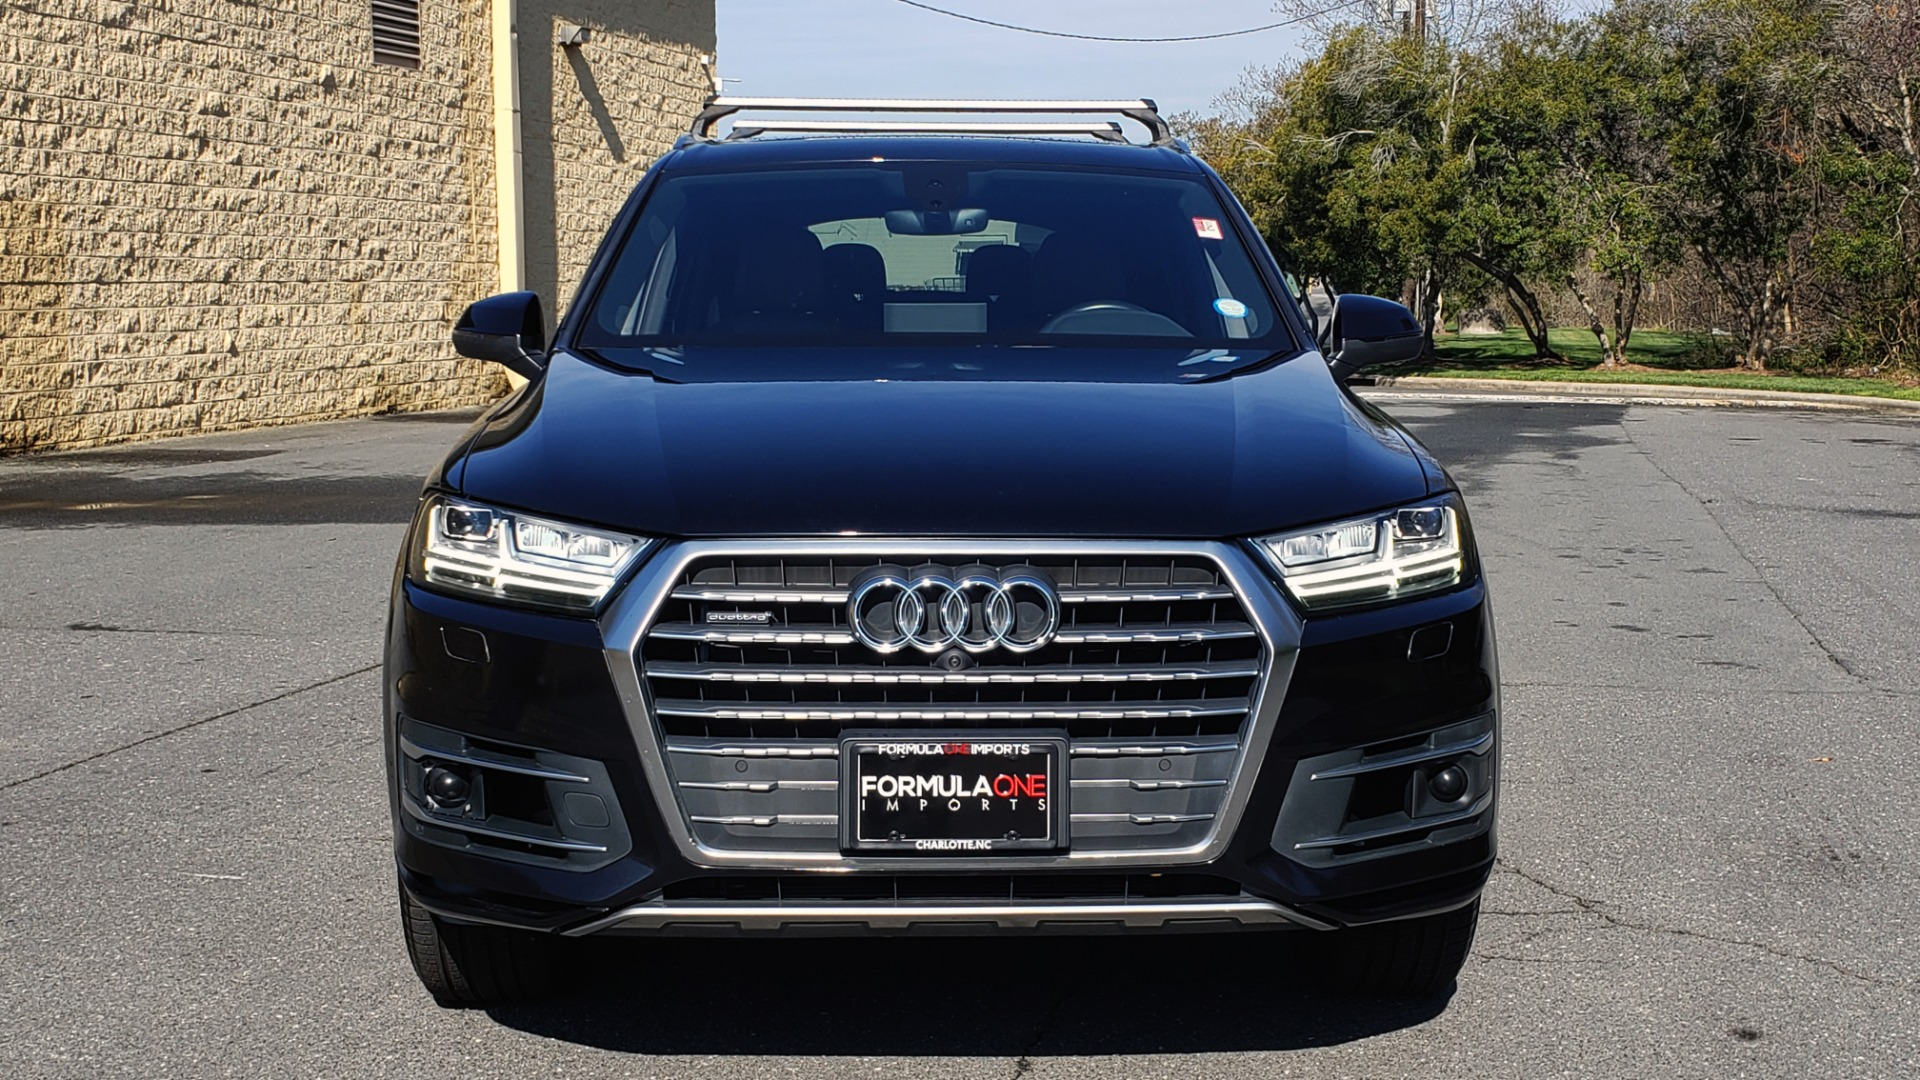 Used 2017 Audi Q7 PREMIUM PLUS 3.0T / NAV / DRVR ASST / NAV / SUNROOF / BOSE / CLD WTHR for sale Sold at Formula Imports in Charlotte NC 28227 29